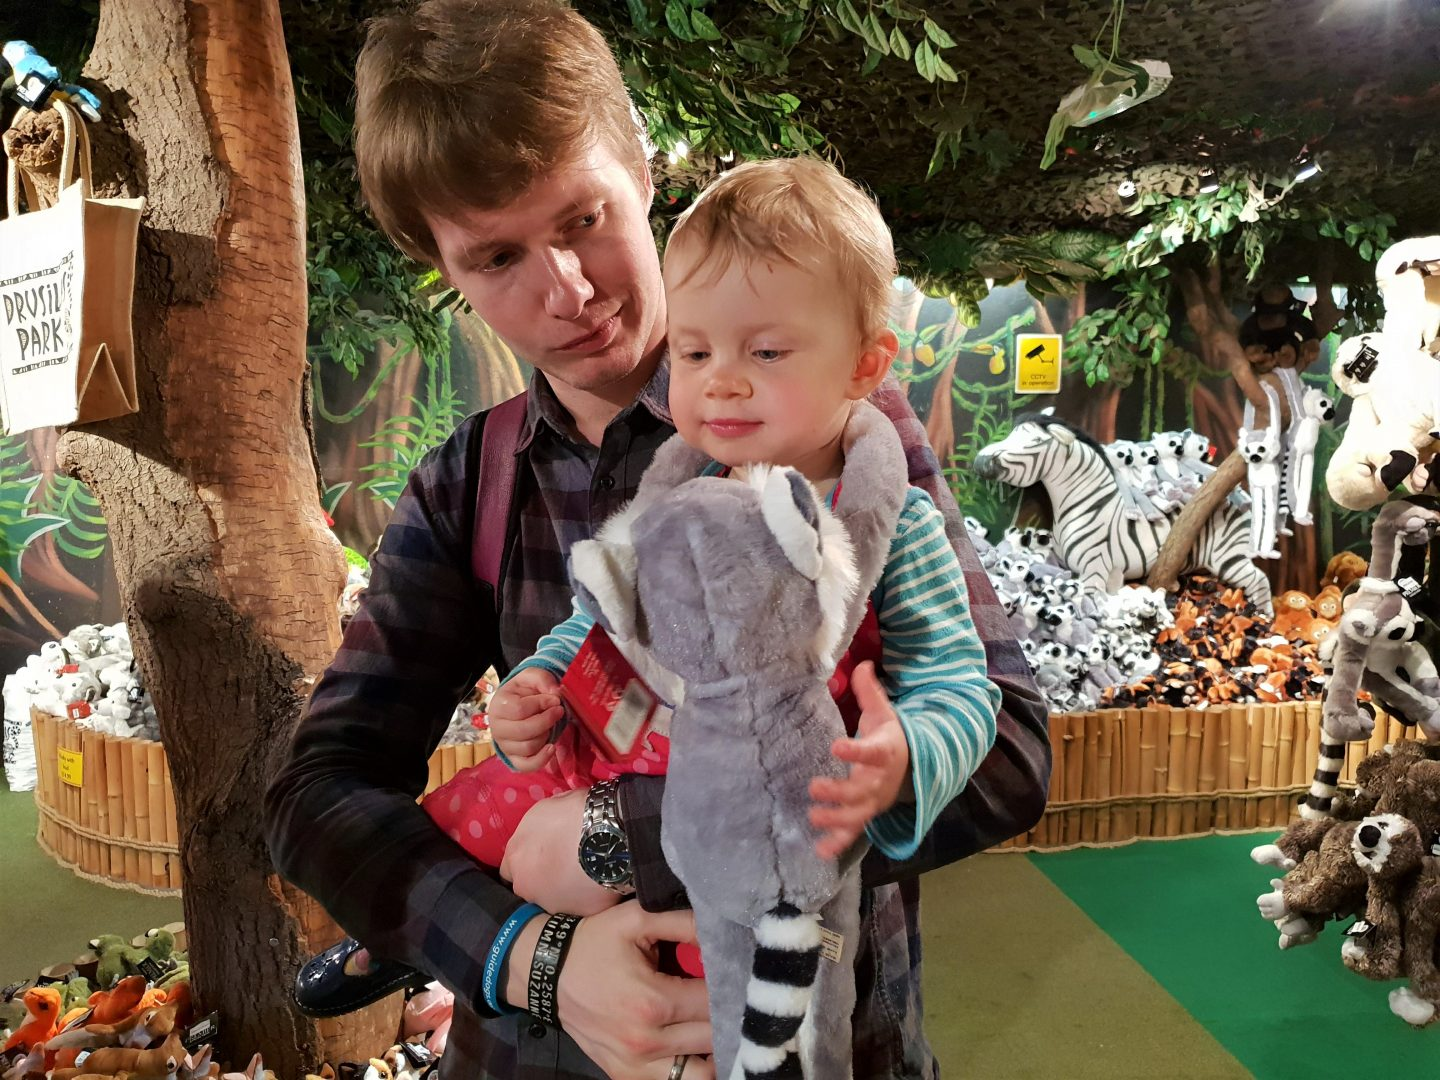 Toddler with lemur in Drusillas Park gift shop